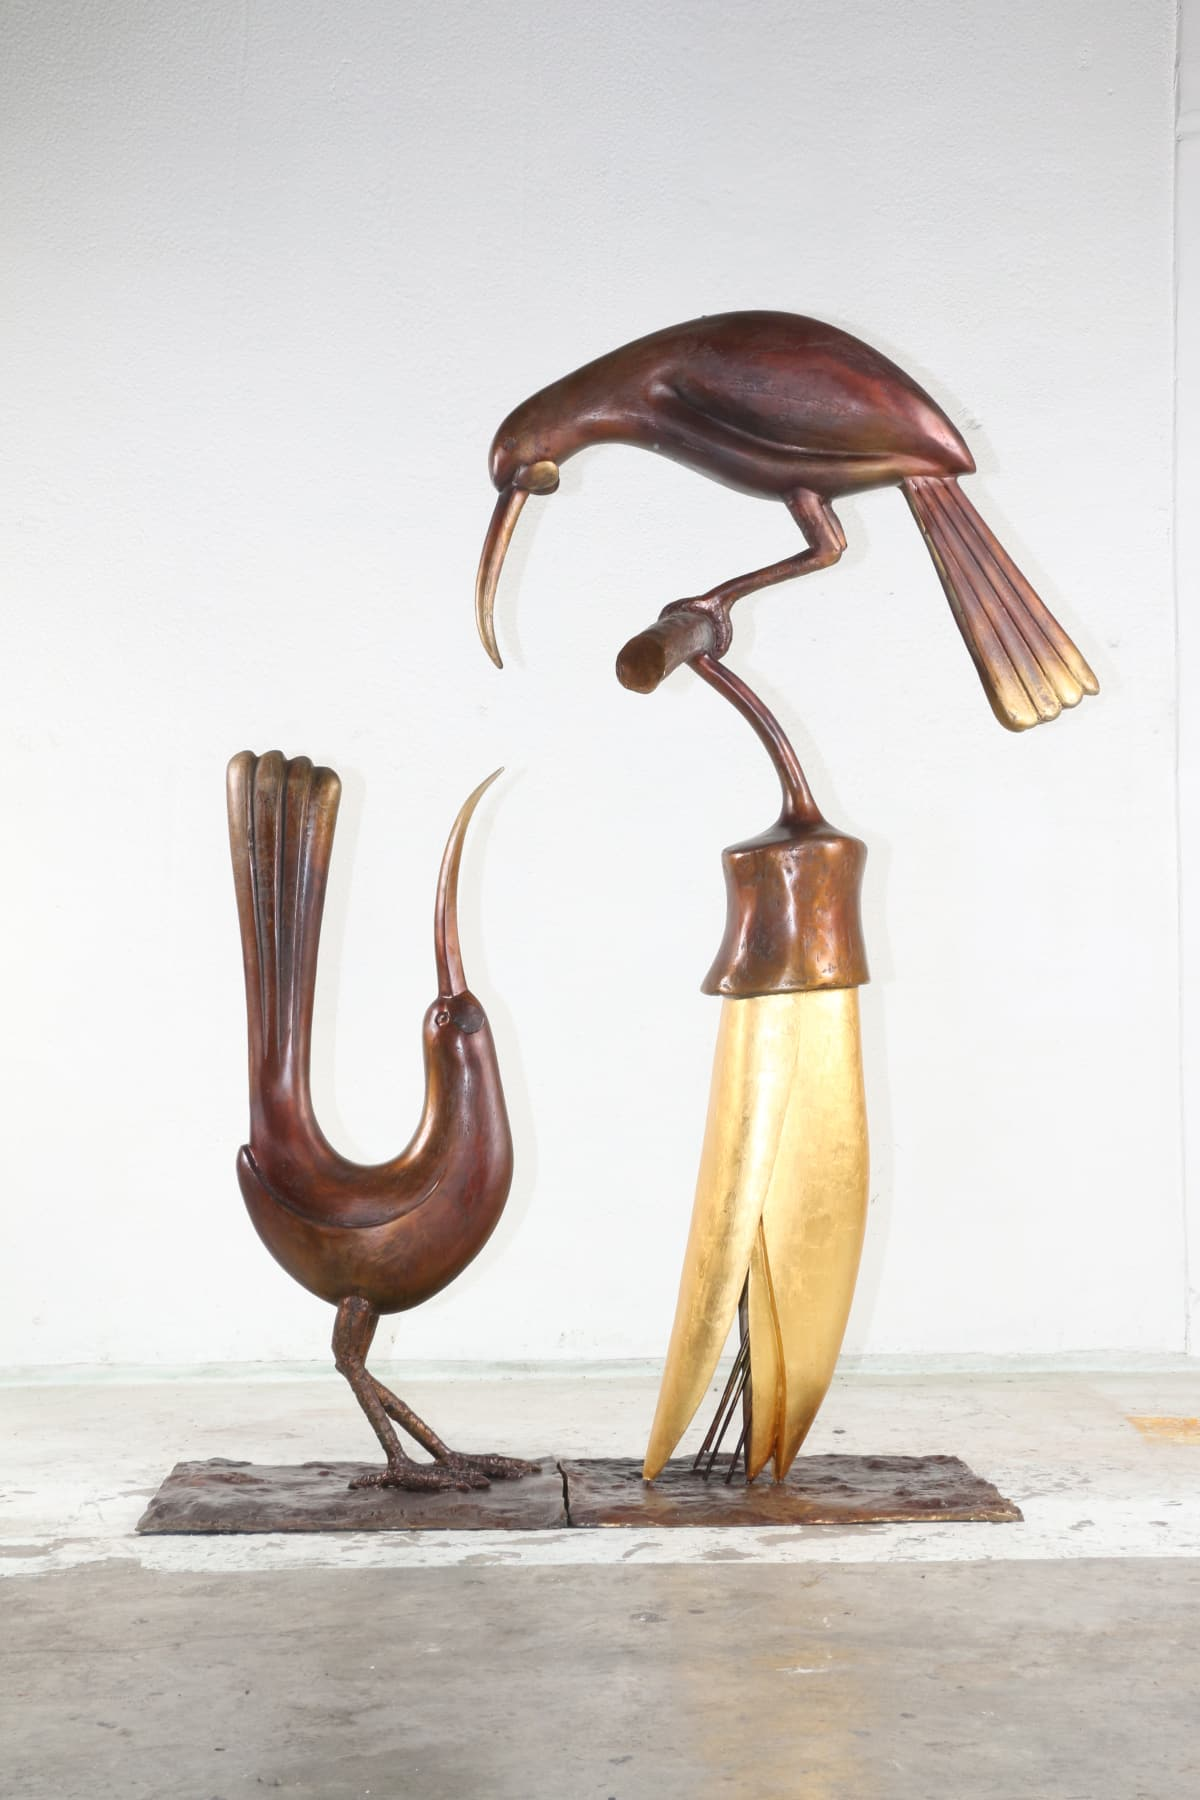 Paul DIBBLE A Dialogue of Two Birds, 2017 Cast bronze and 24kt gold 88.2 x 72.8 x 23.6 in 224 x 185 x 60 cm #2/2